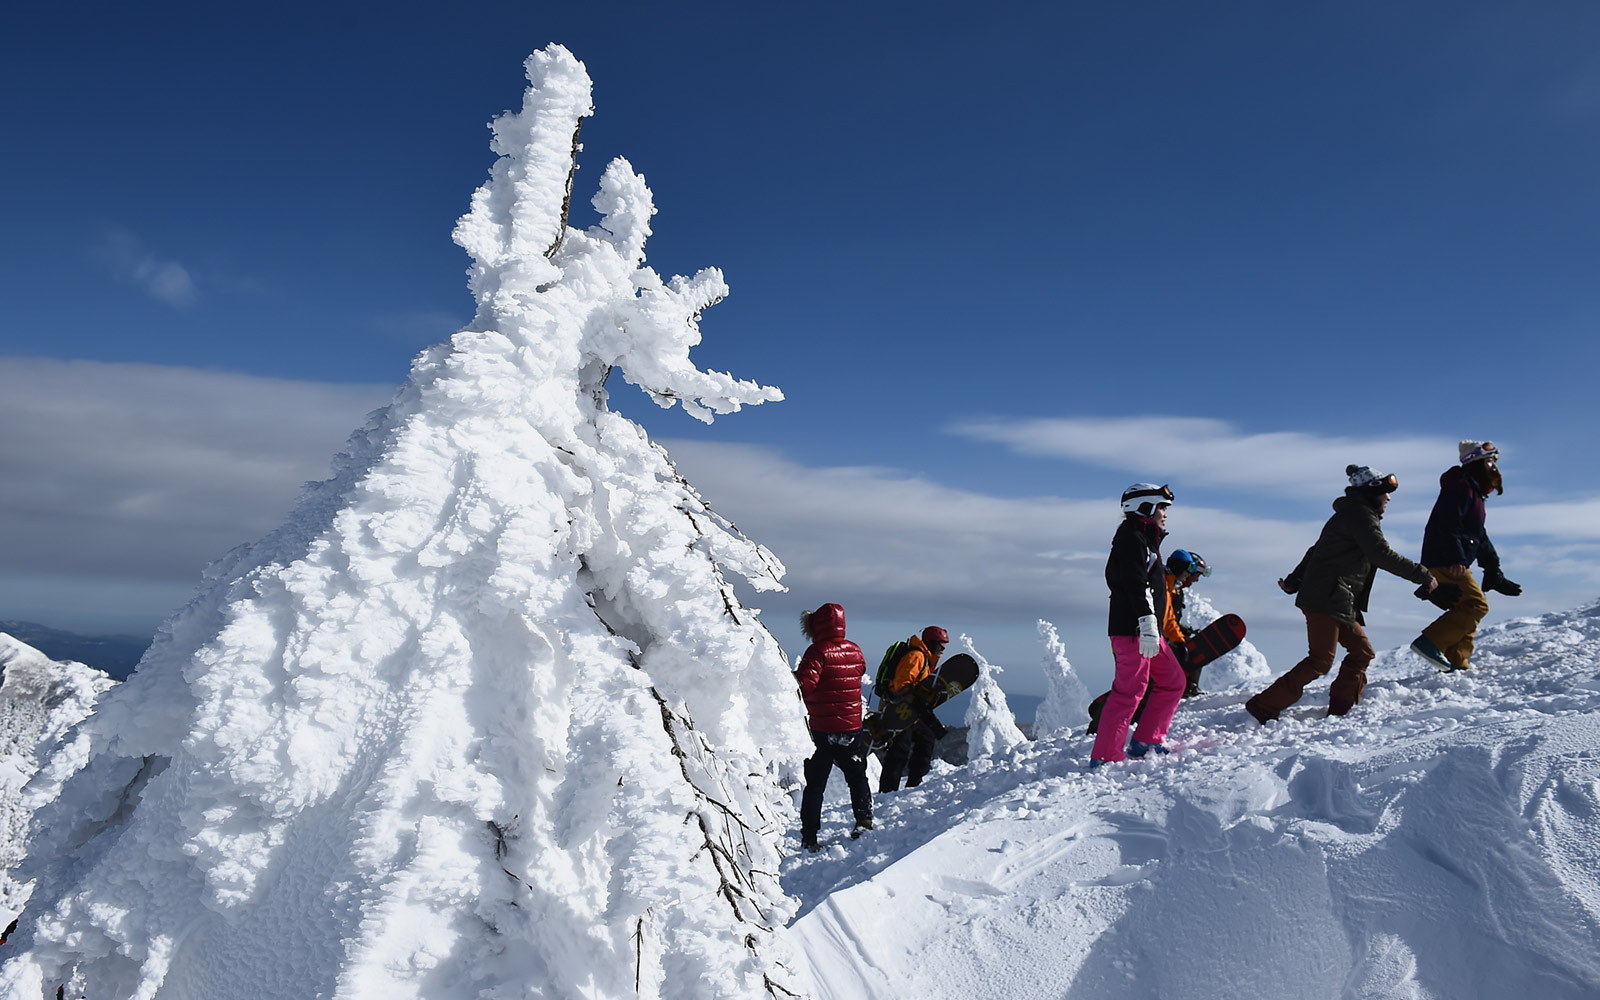 Snow monsters and skiers in Zao, Japan